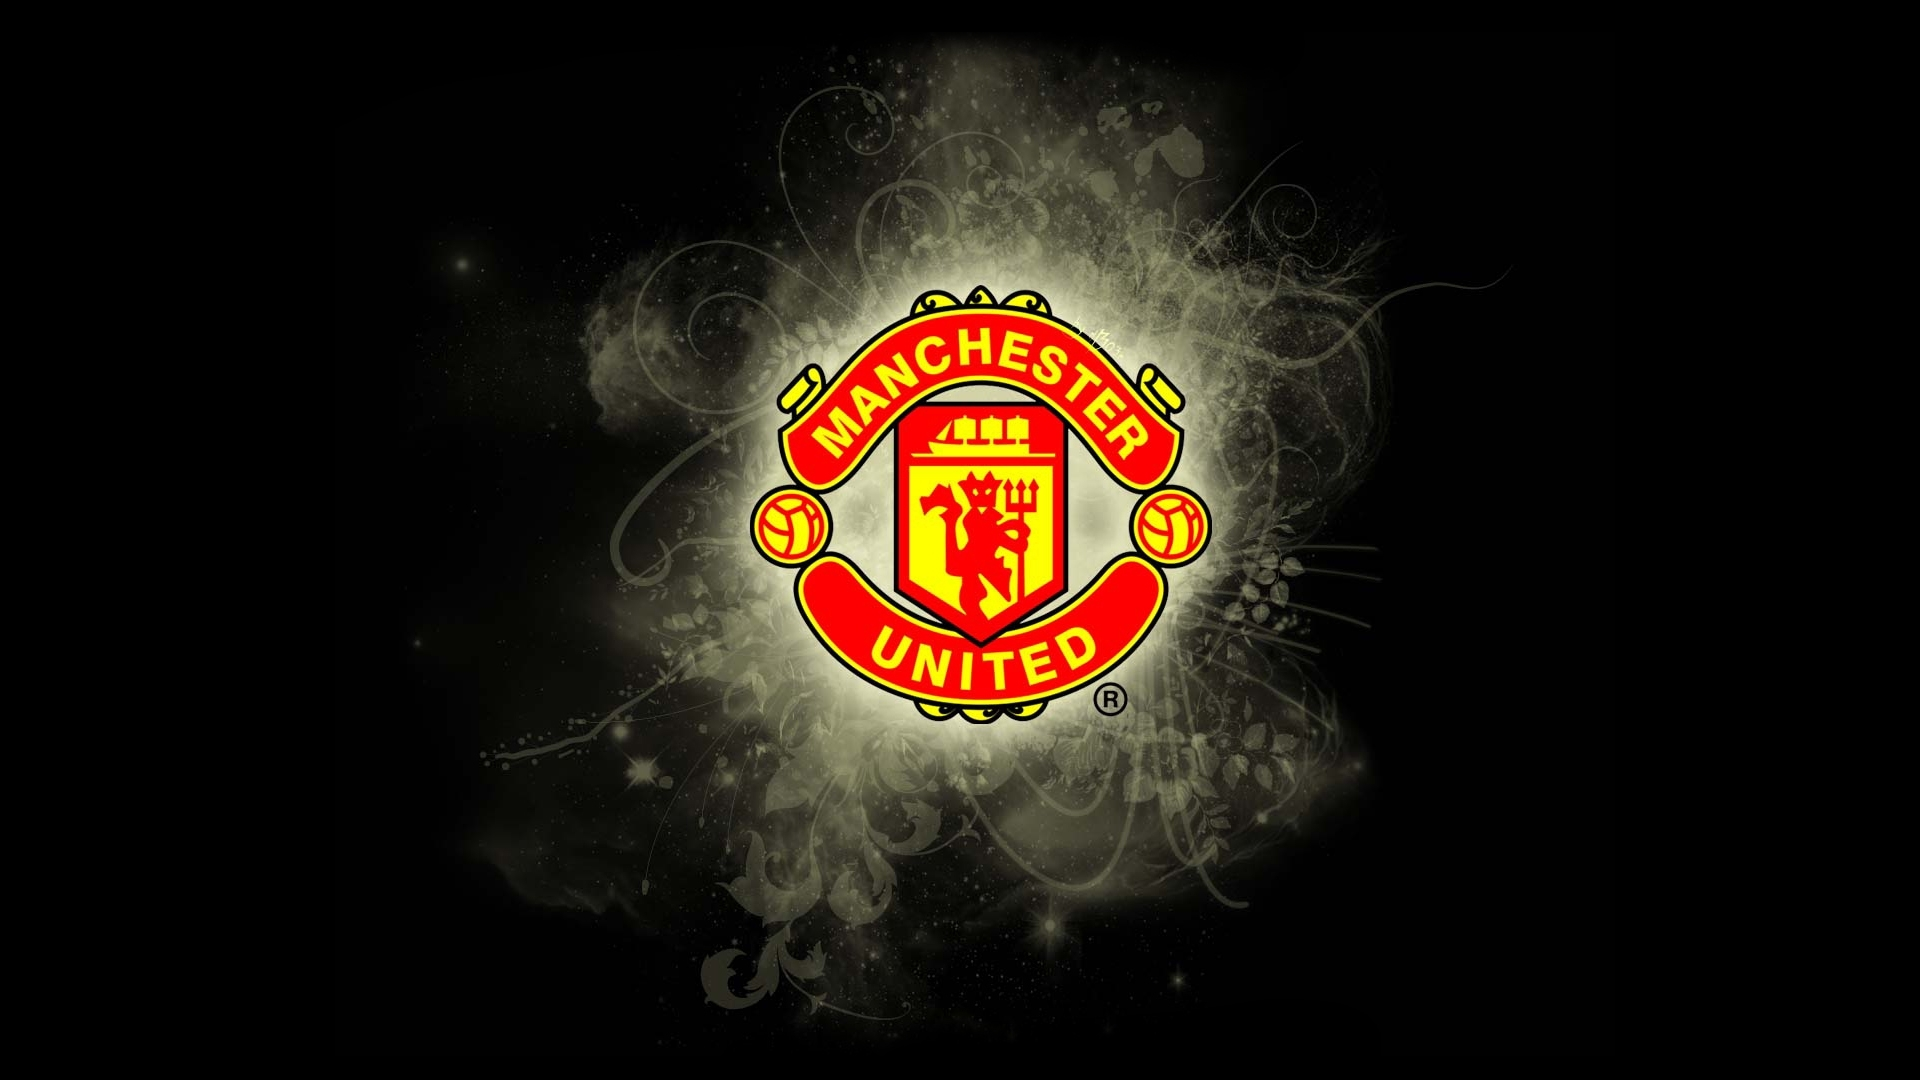 manchester united high def logo wallpapers - wallpaper.wiki